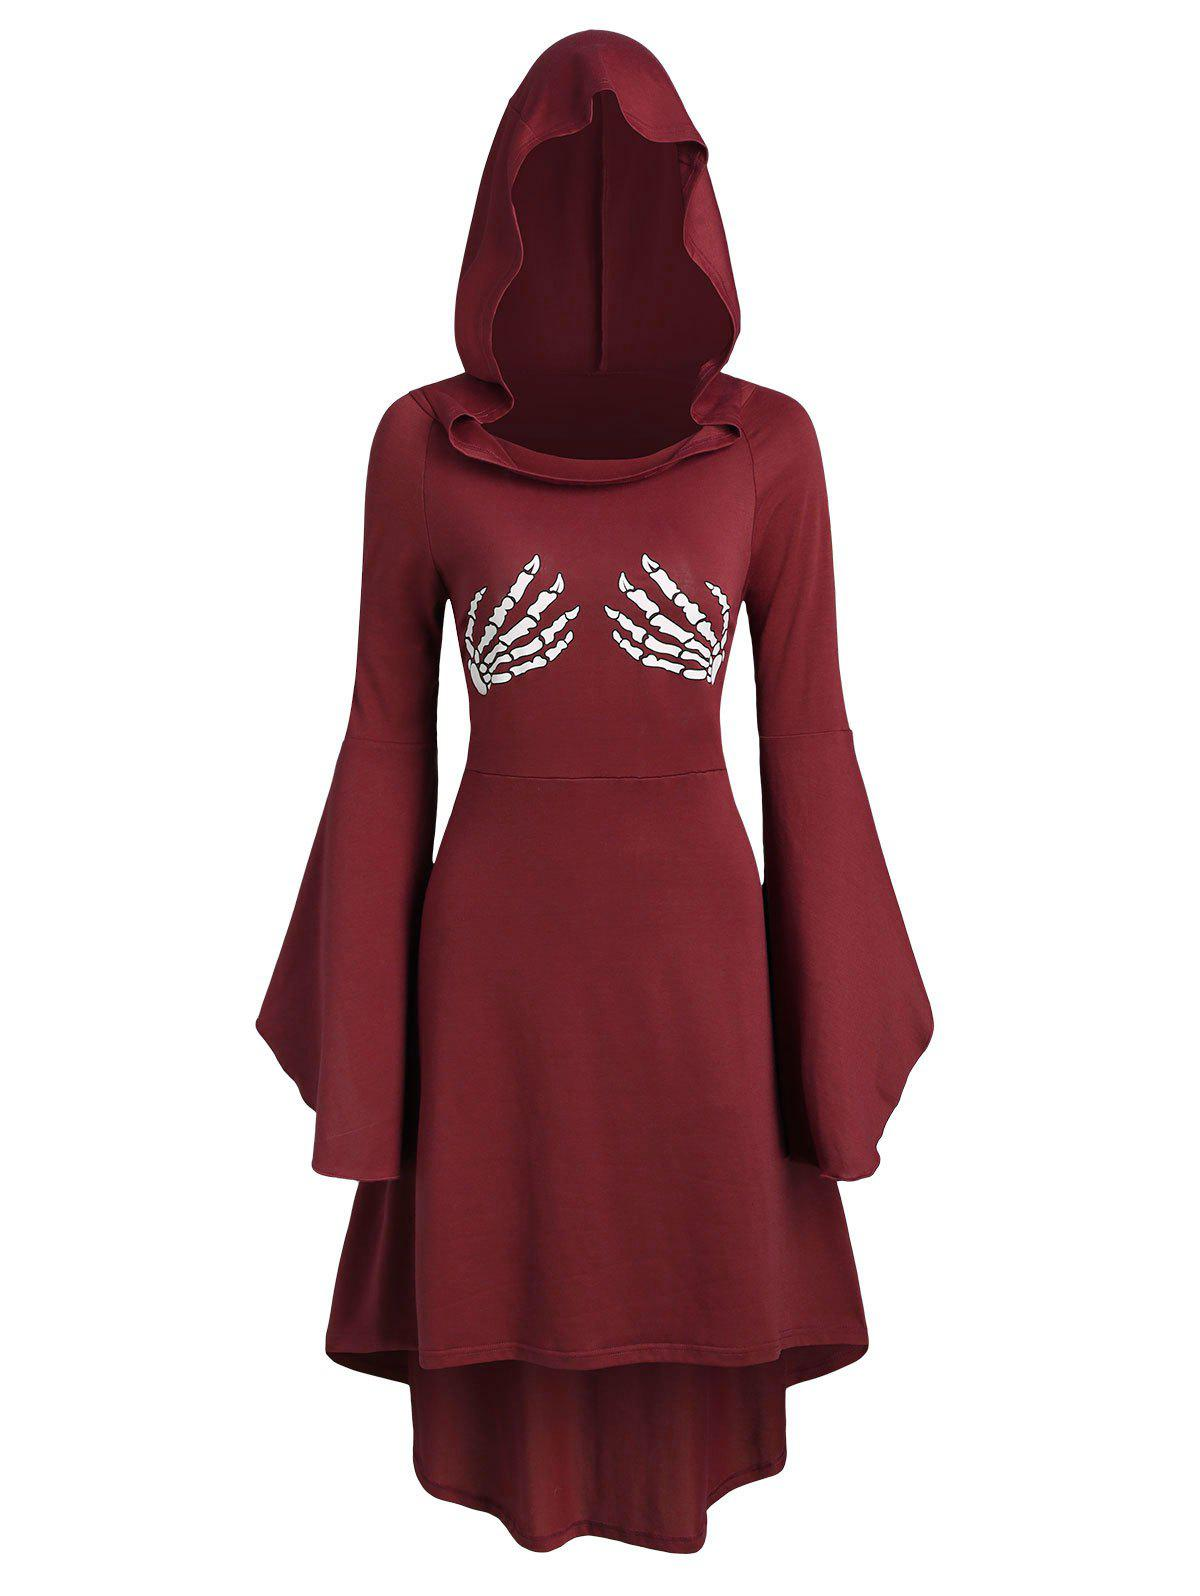 Skeleton Print Lace Up Halloween Hooded Dress - RED WINE M